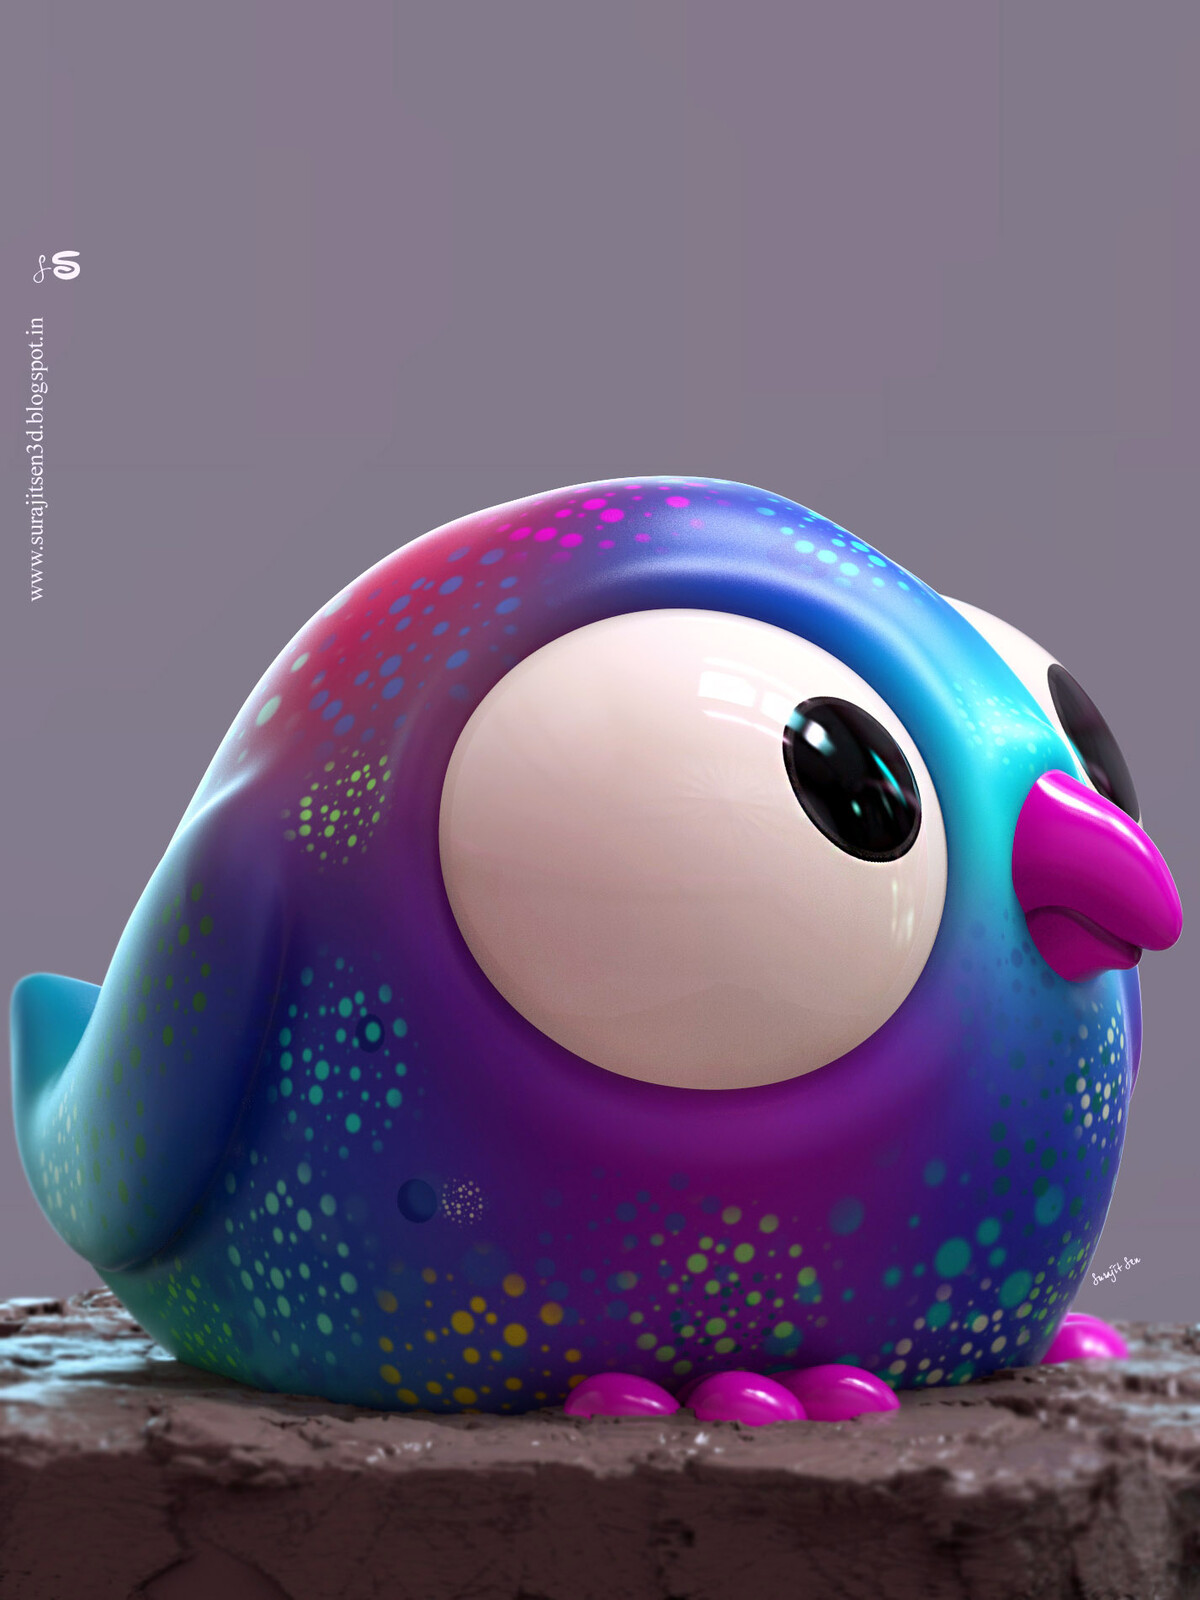 Bobo. A CG bird. 